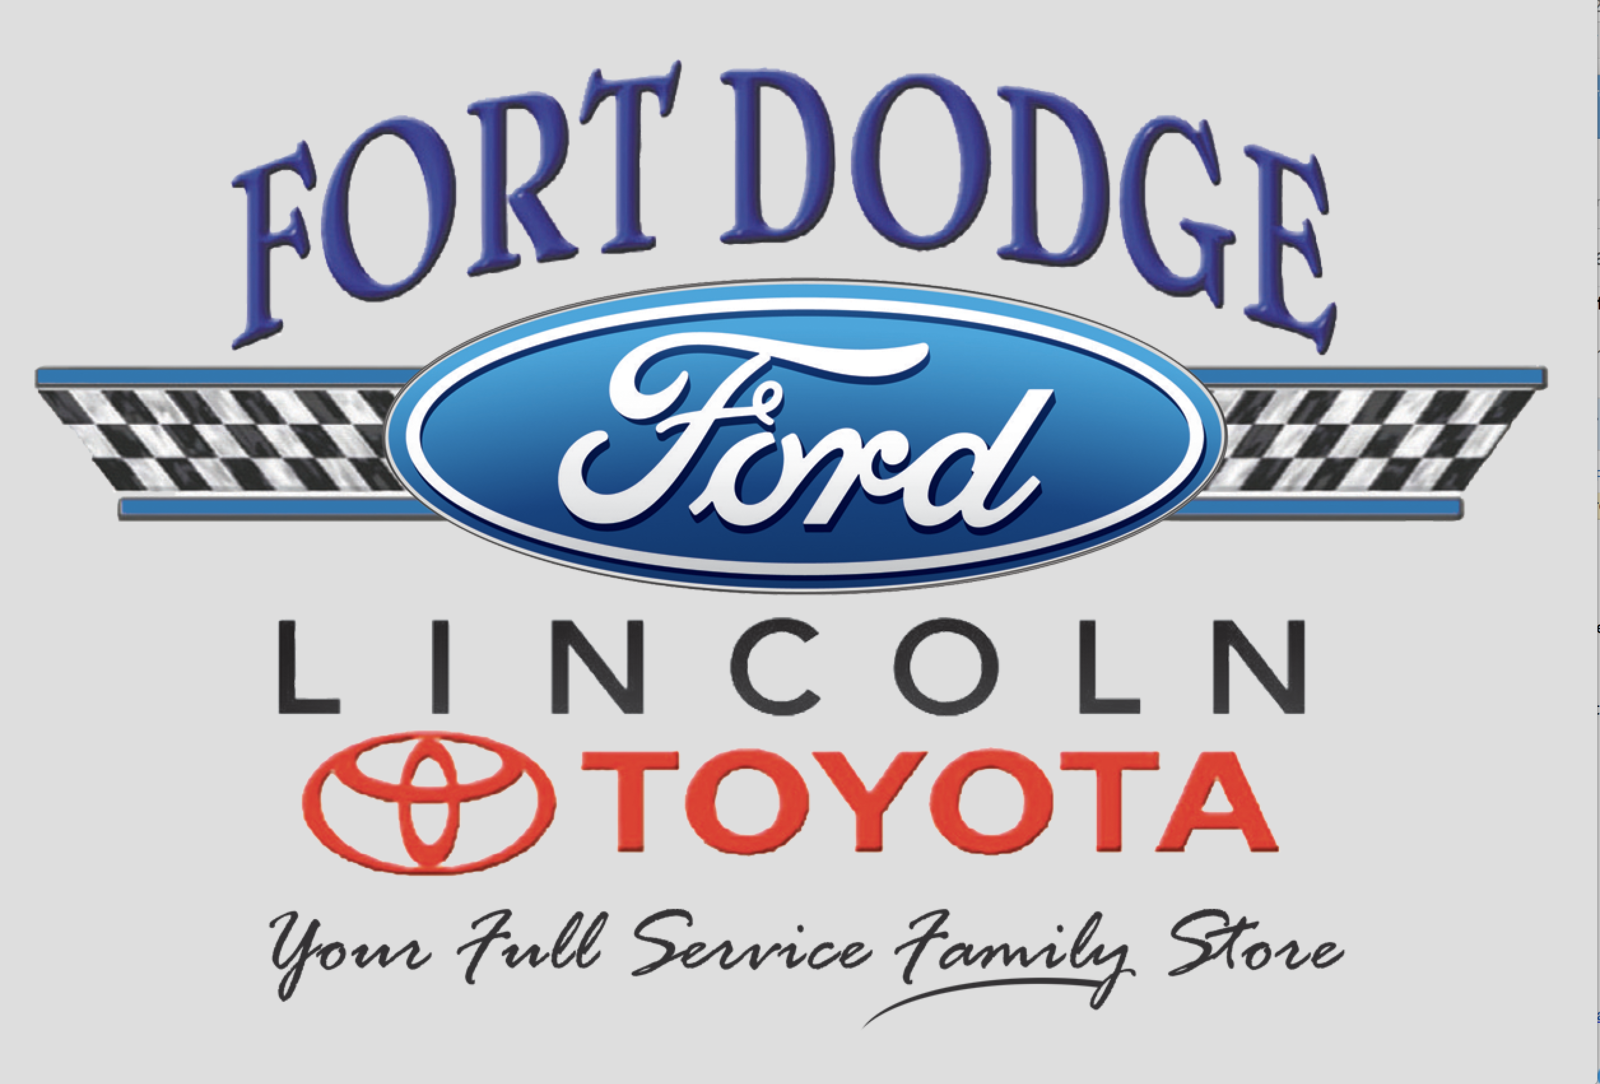 Fort Dodge Ford >> Fort Dodge Ford Lincoln Toyota Fort Dodge Ia Read Consumer